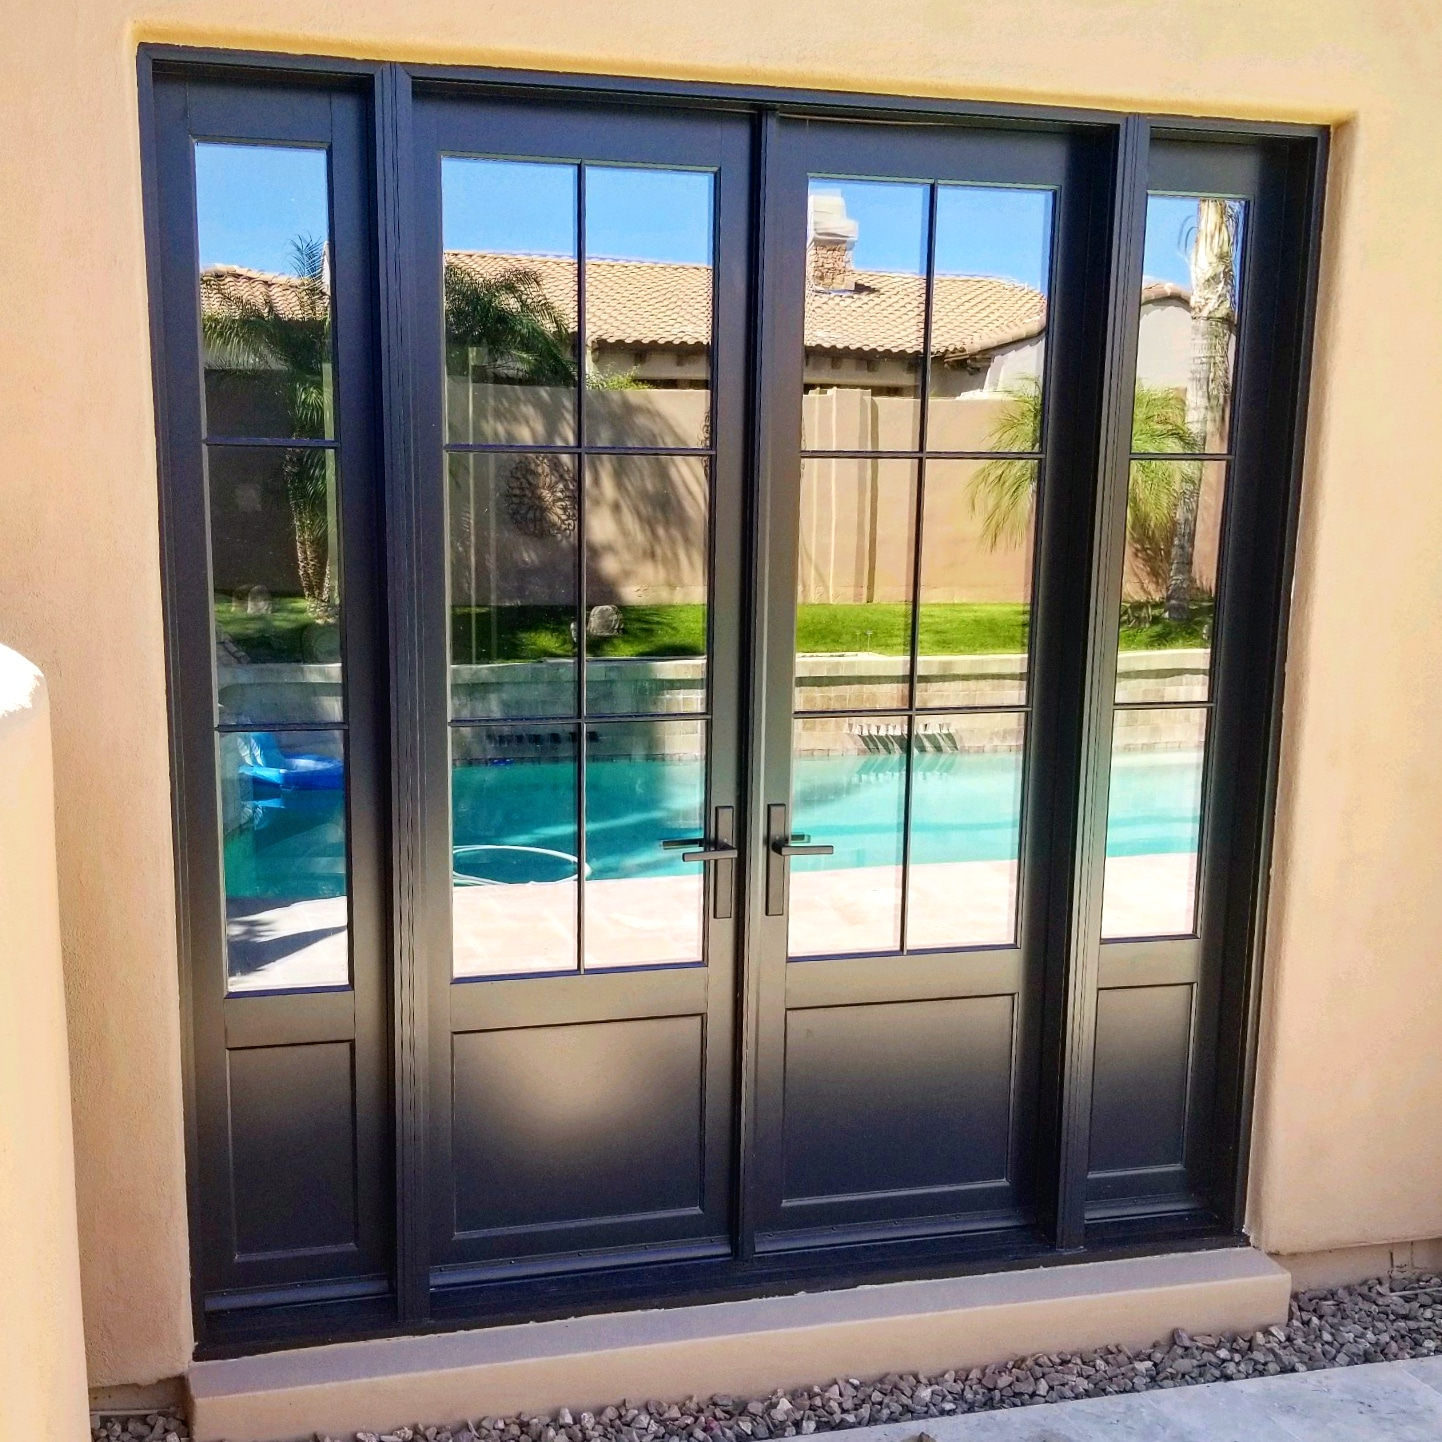 Arizona Window and Door in Scottsdale and Tucson showing black french doors for patio